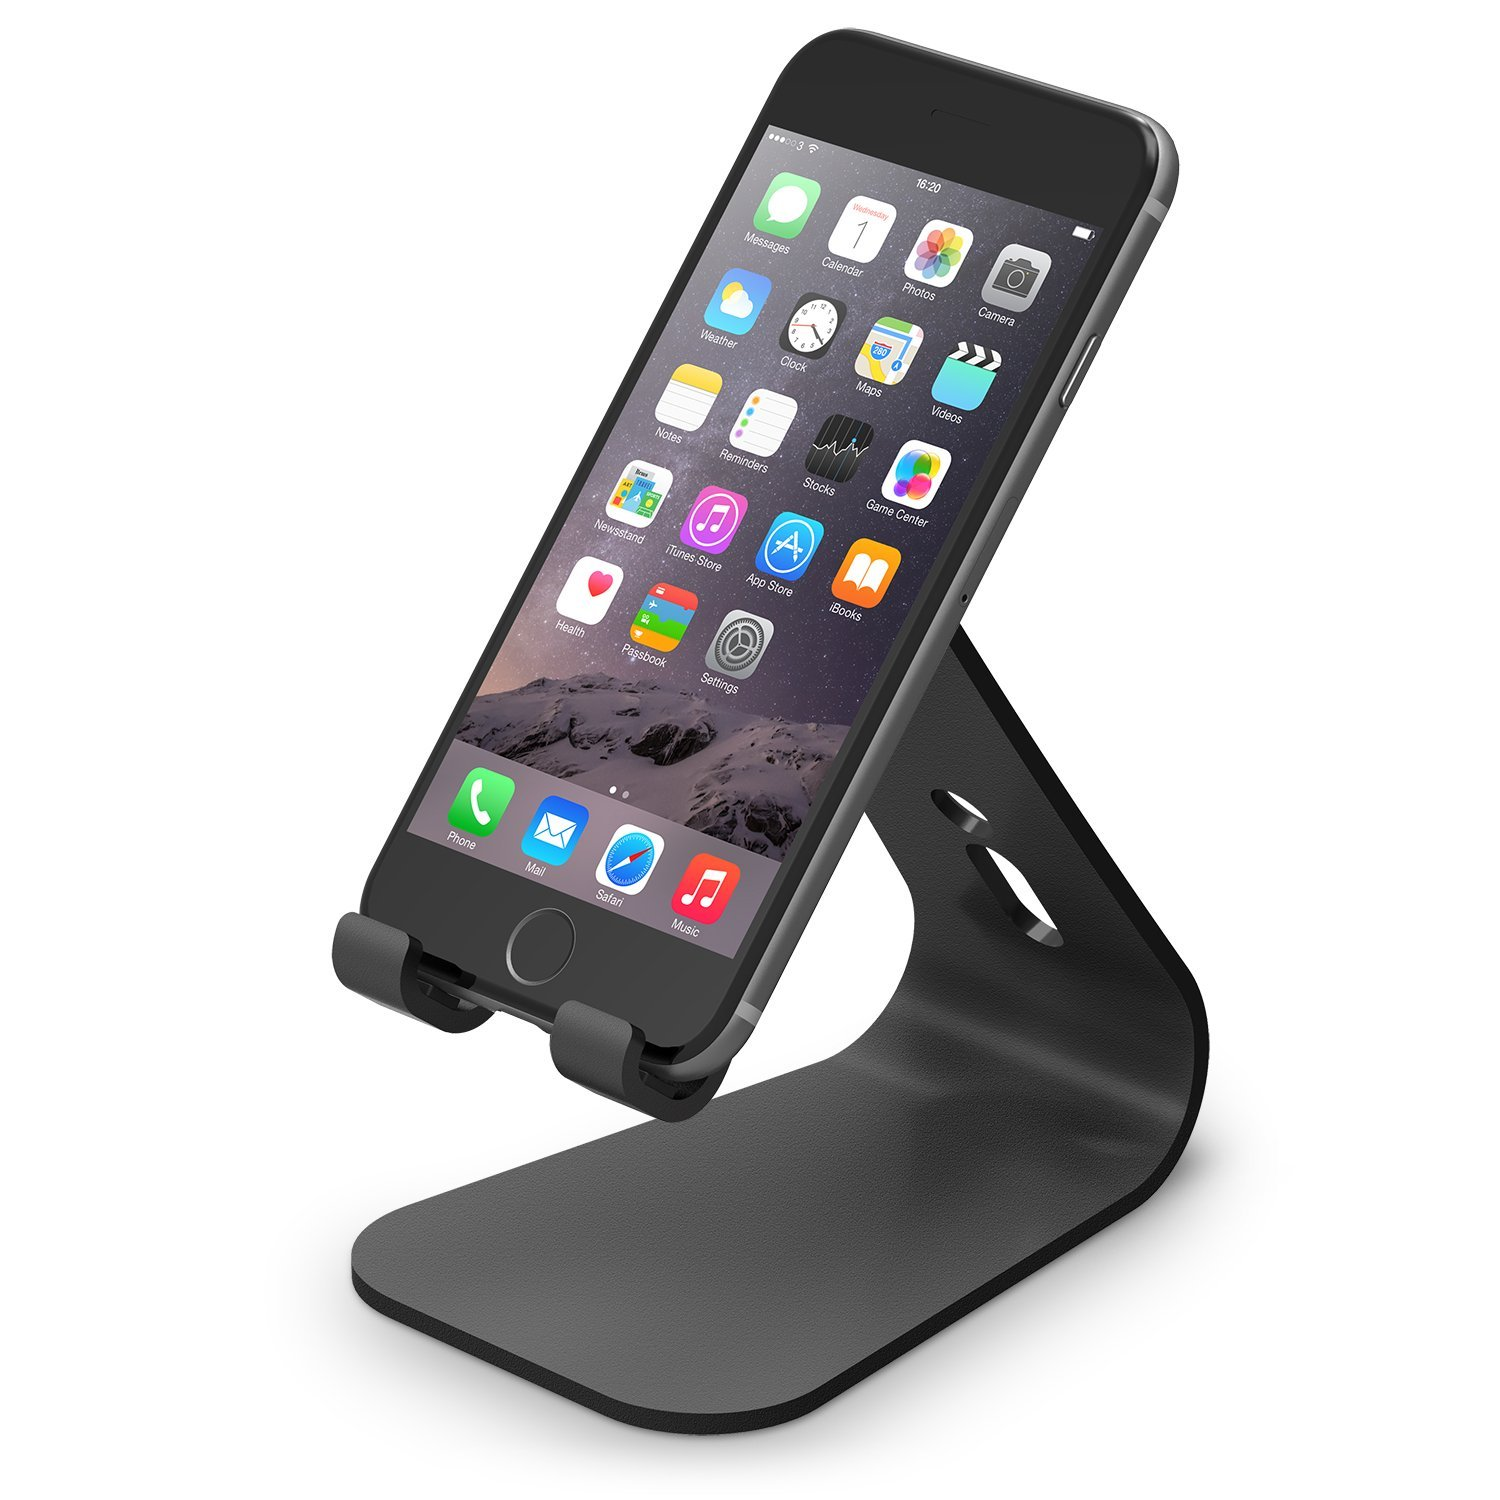 mobile holder products ebook stand kindle metal phone cellphone universal desk iphone tablet aluminum for